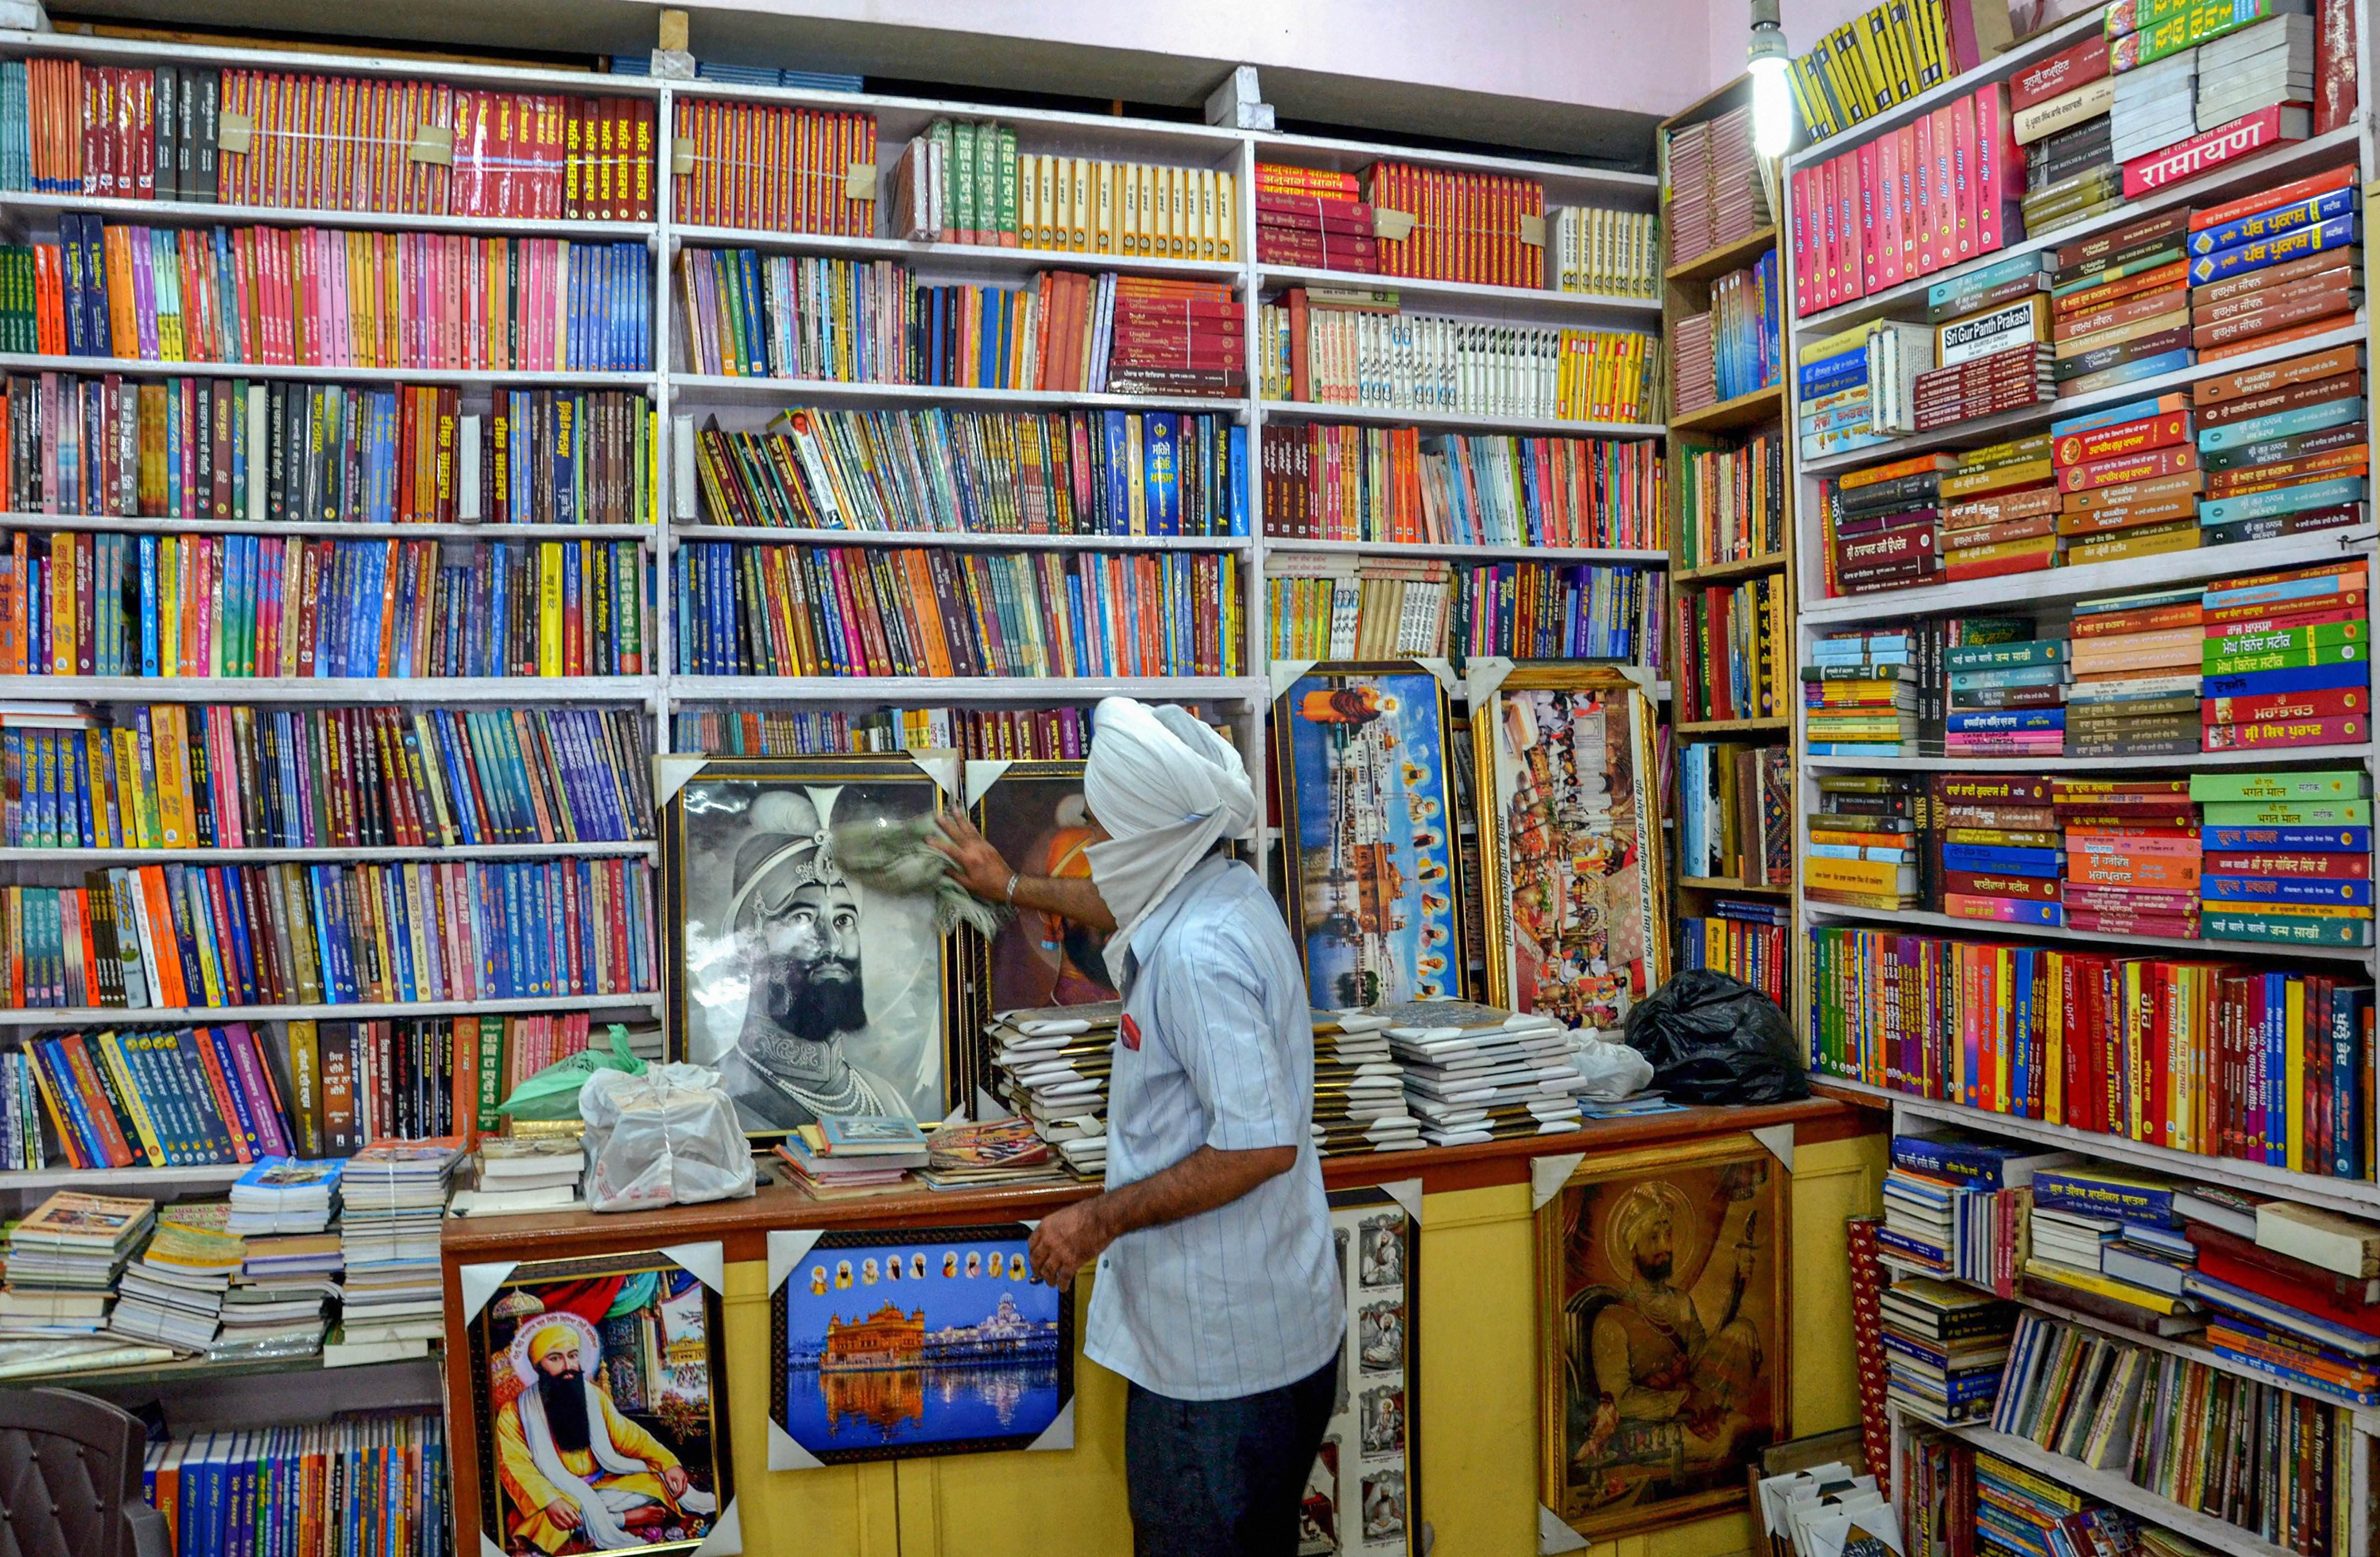 A shopkeeper cleans a portrait inside his book store near Golden Temple after authorities eased restrictions, during the ongoing COVID-19 nationwide lockdown, in Amritsar, Tuesday, June 2, 2020.